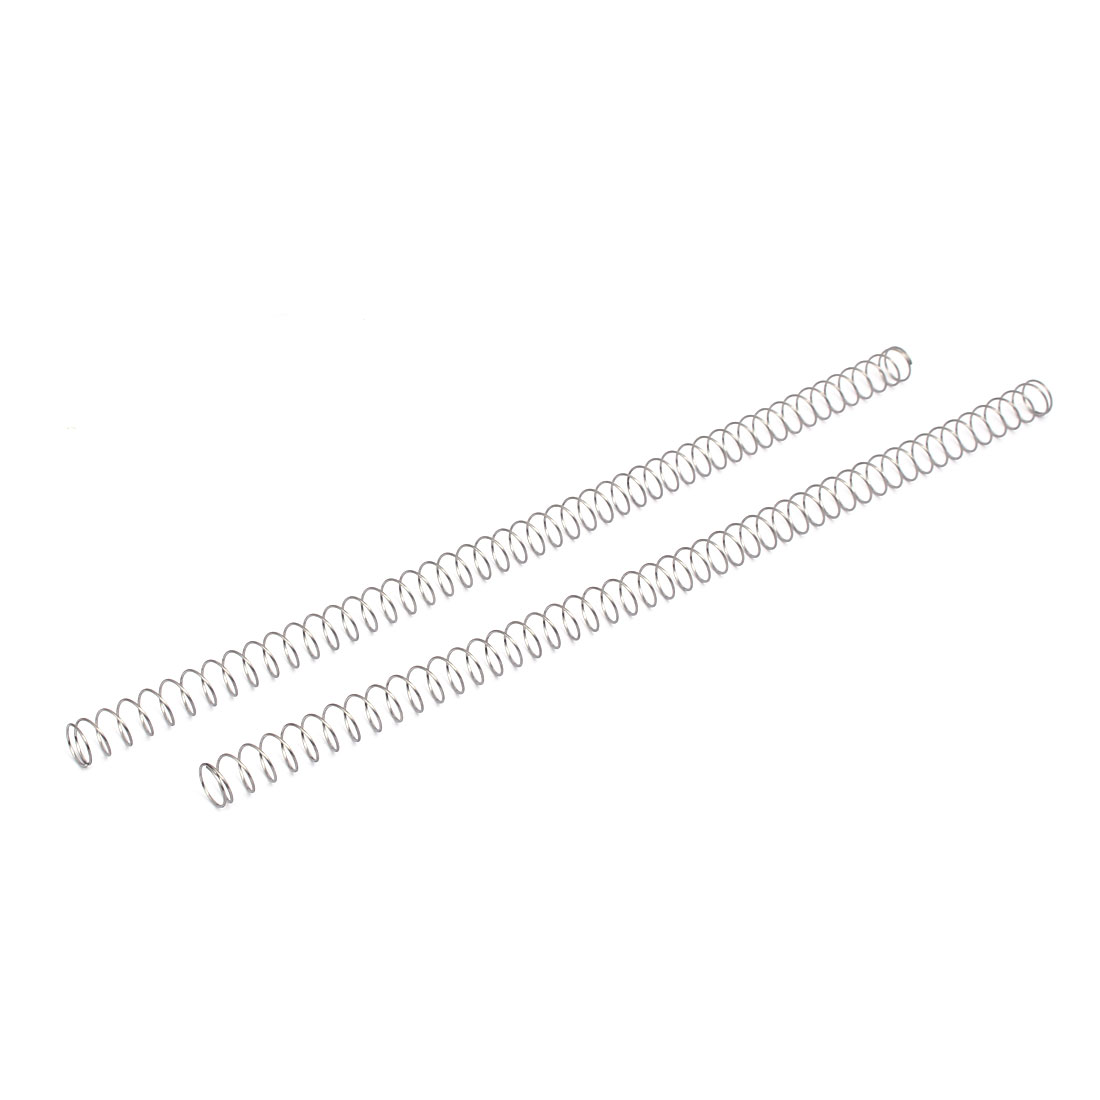 0.8mmx12mmx305mm 304 Stainless Steel Compression Springs Silver Tone 2pcs